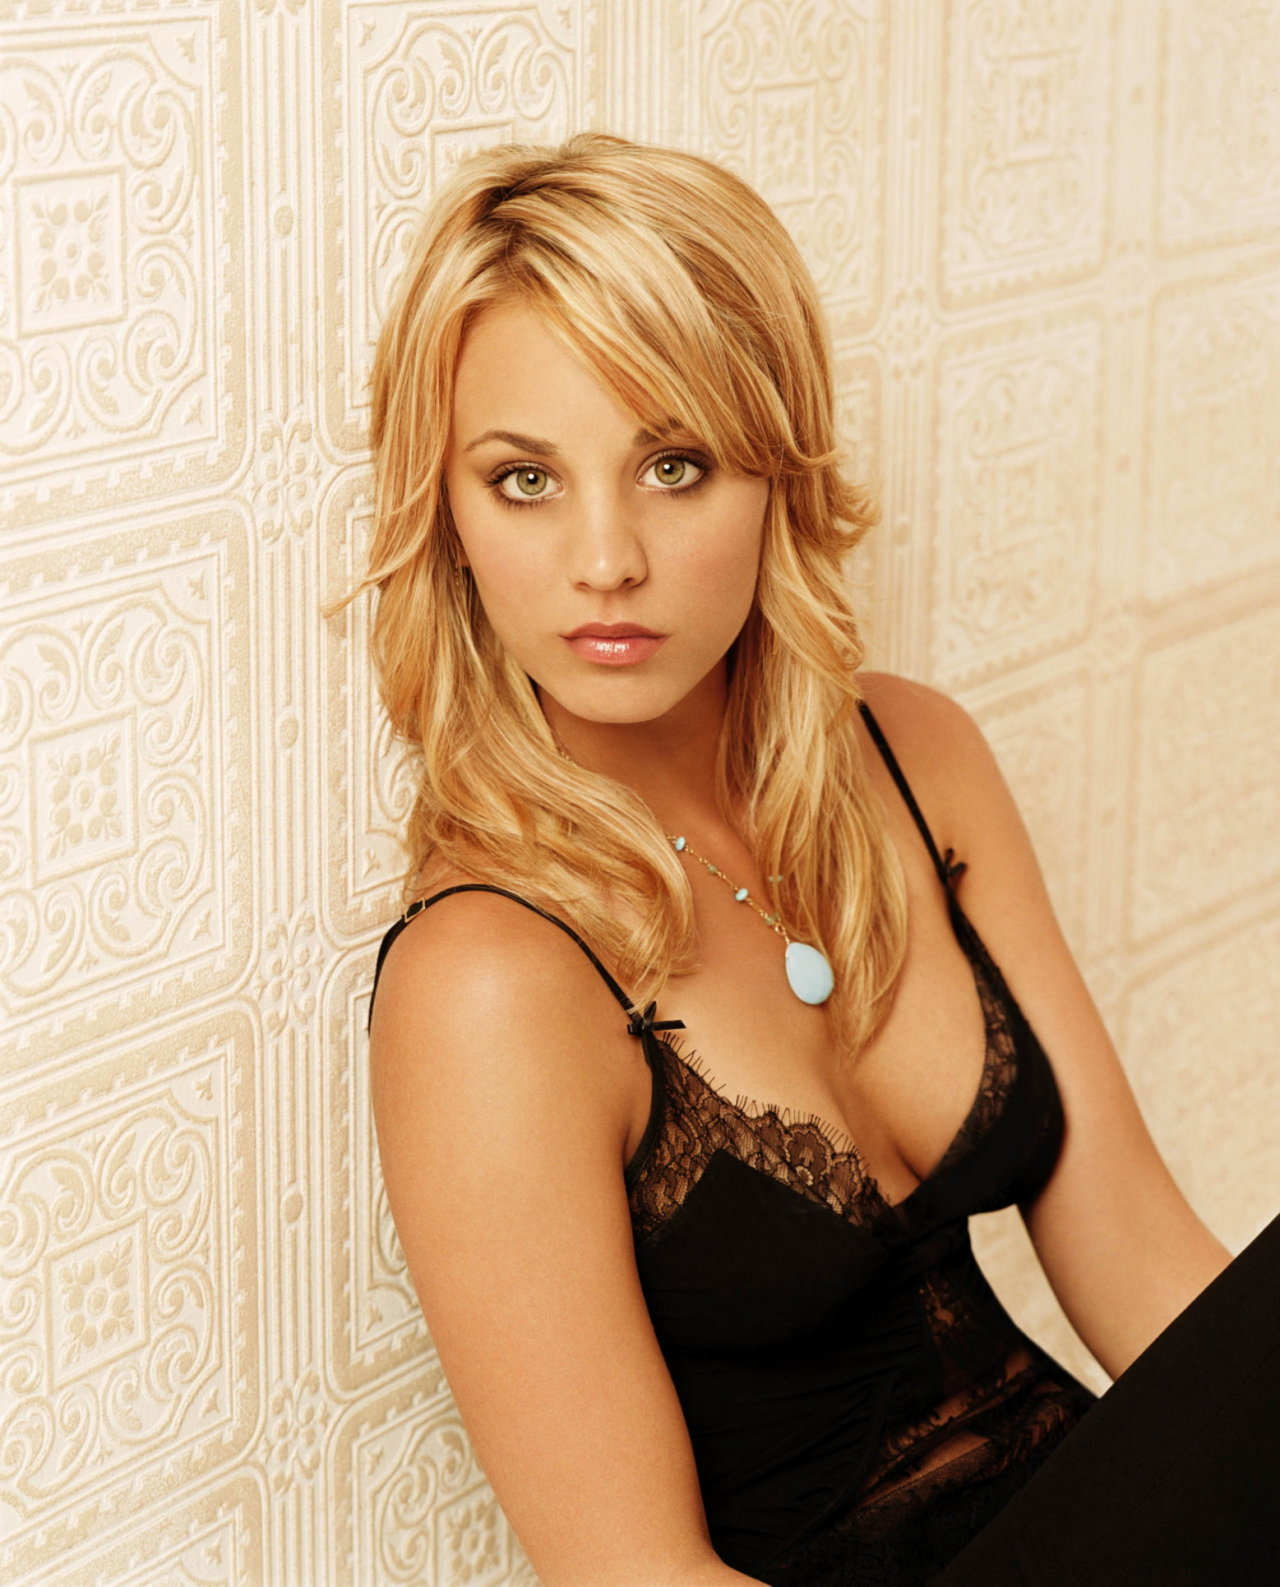 Kaley Cuoco - Photos Hot